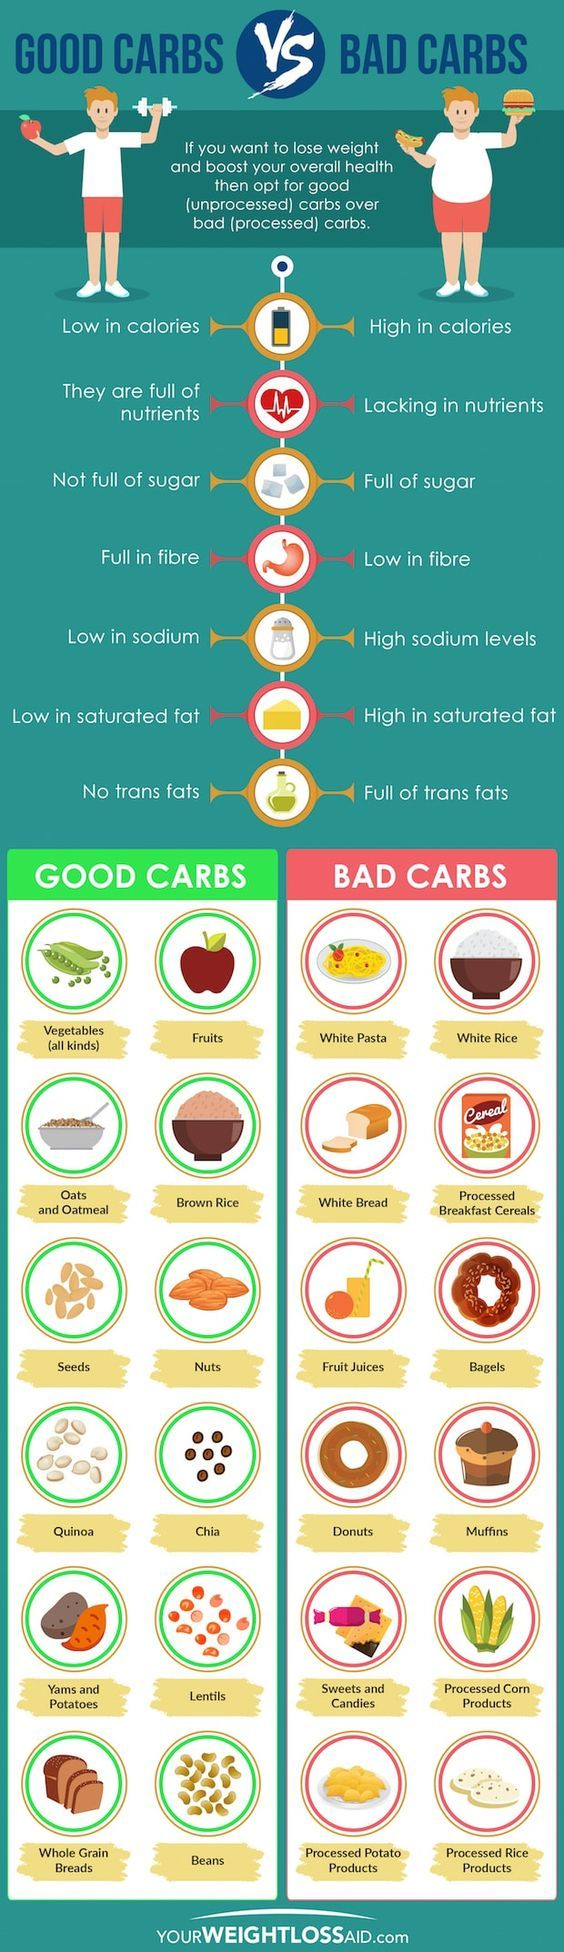 #weightloss goals you should opt for good unprocessed carbs over bad processed carbs